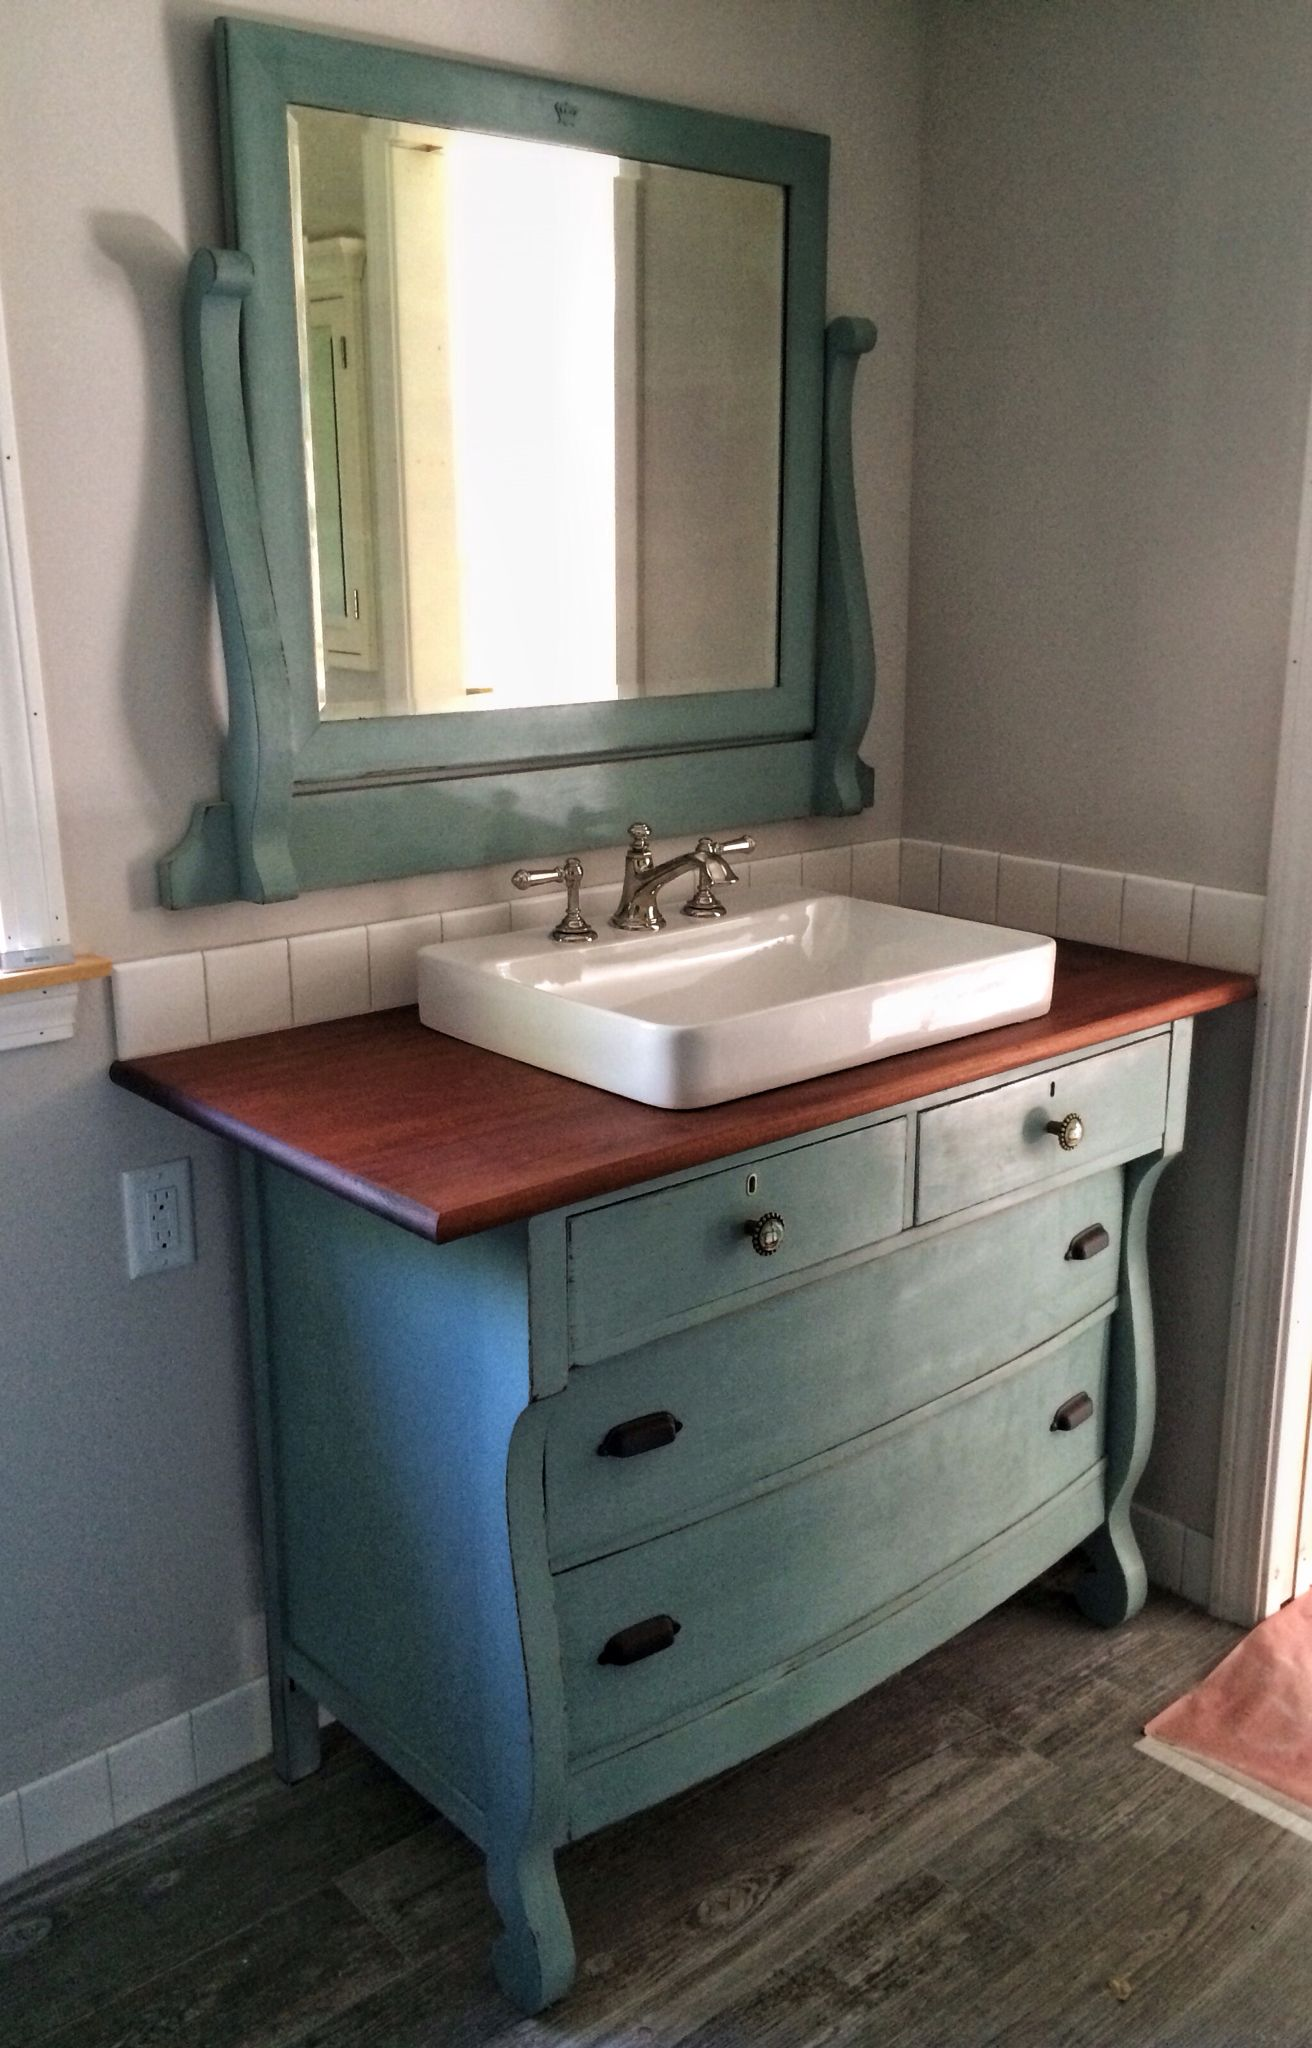 I Just Repurposed An Old Dresser To Use As A Vanity In Our New Bathroom I Chalk Painted It